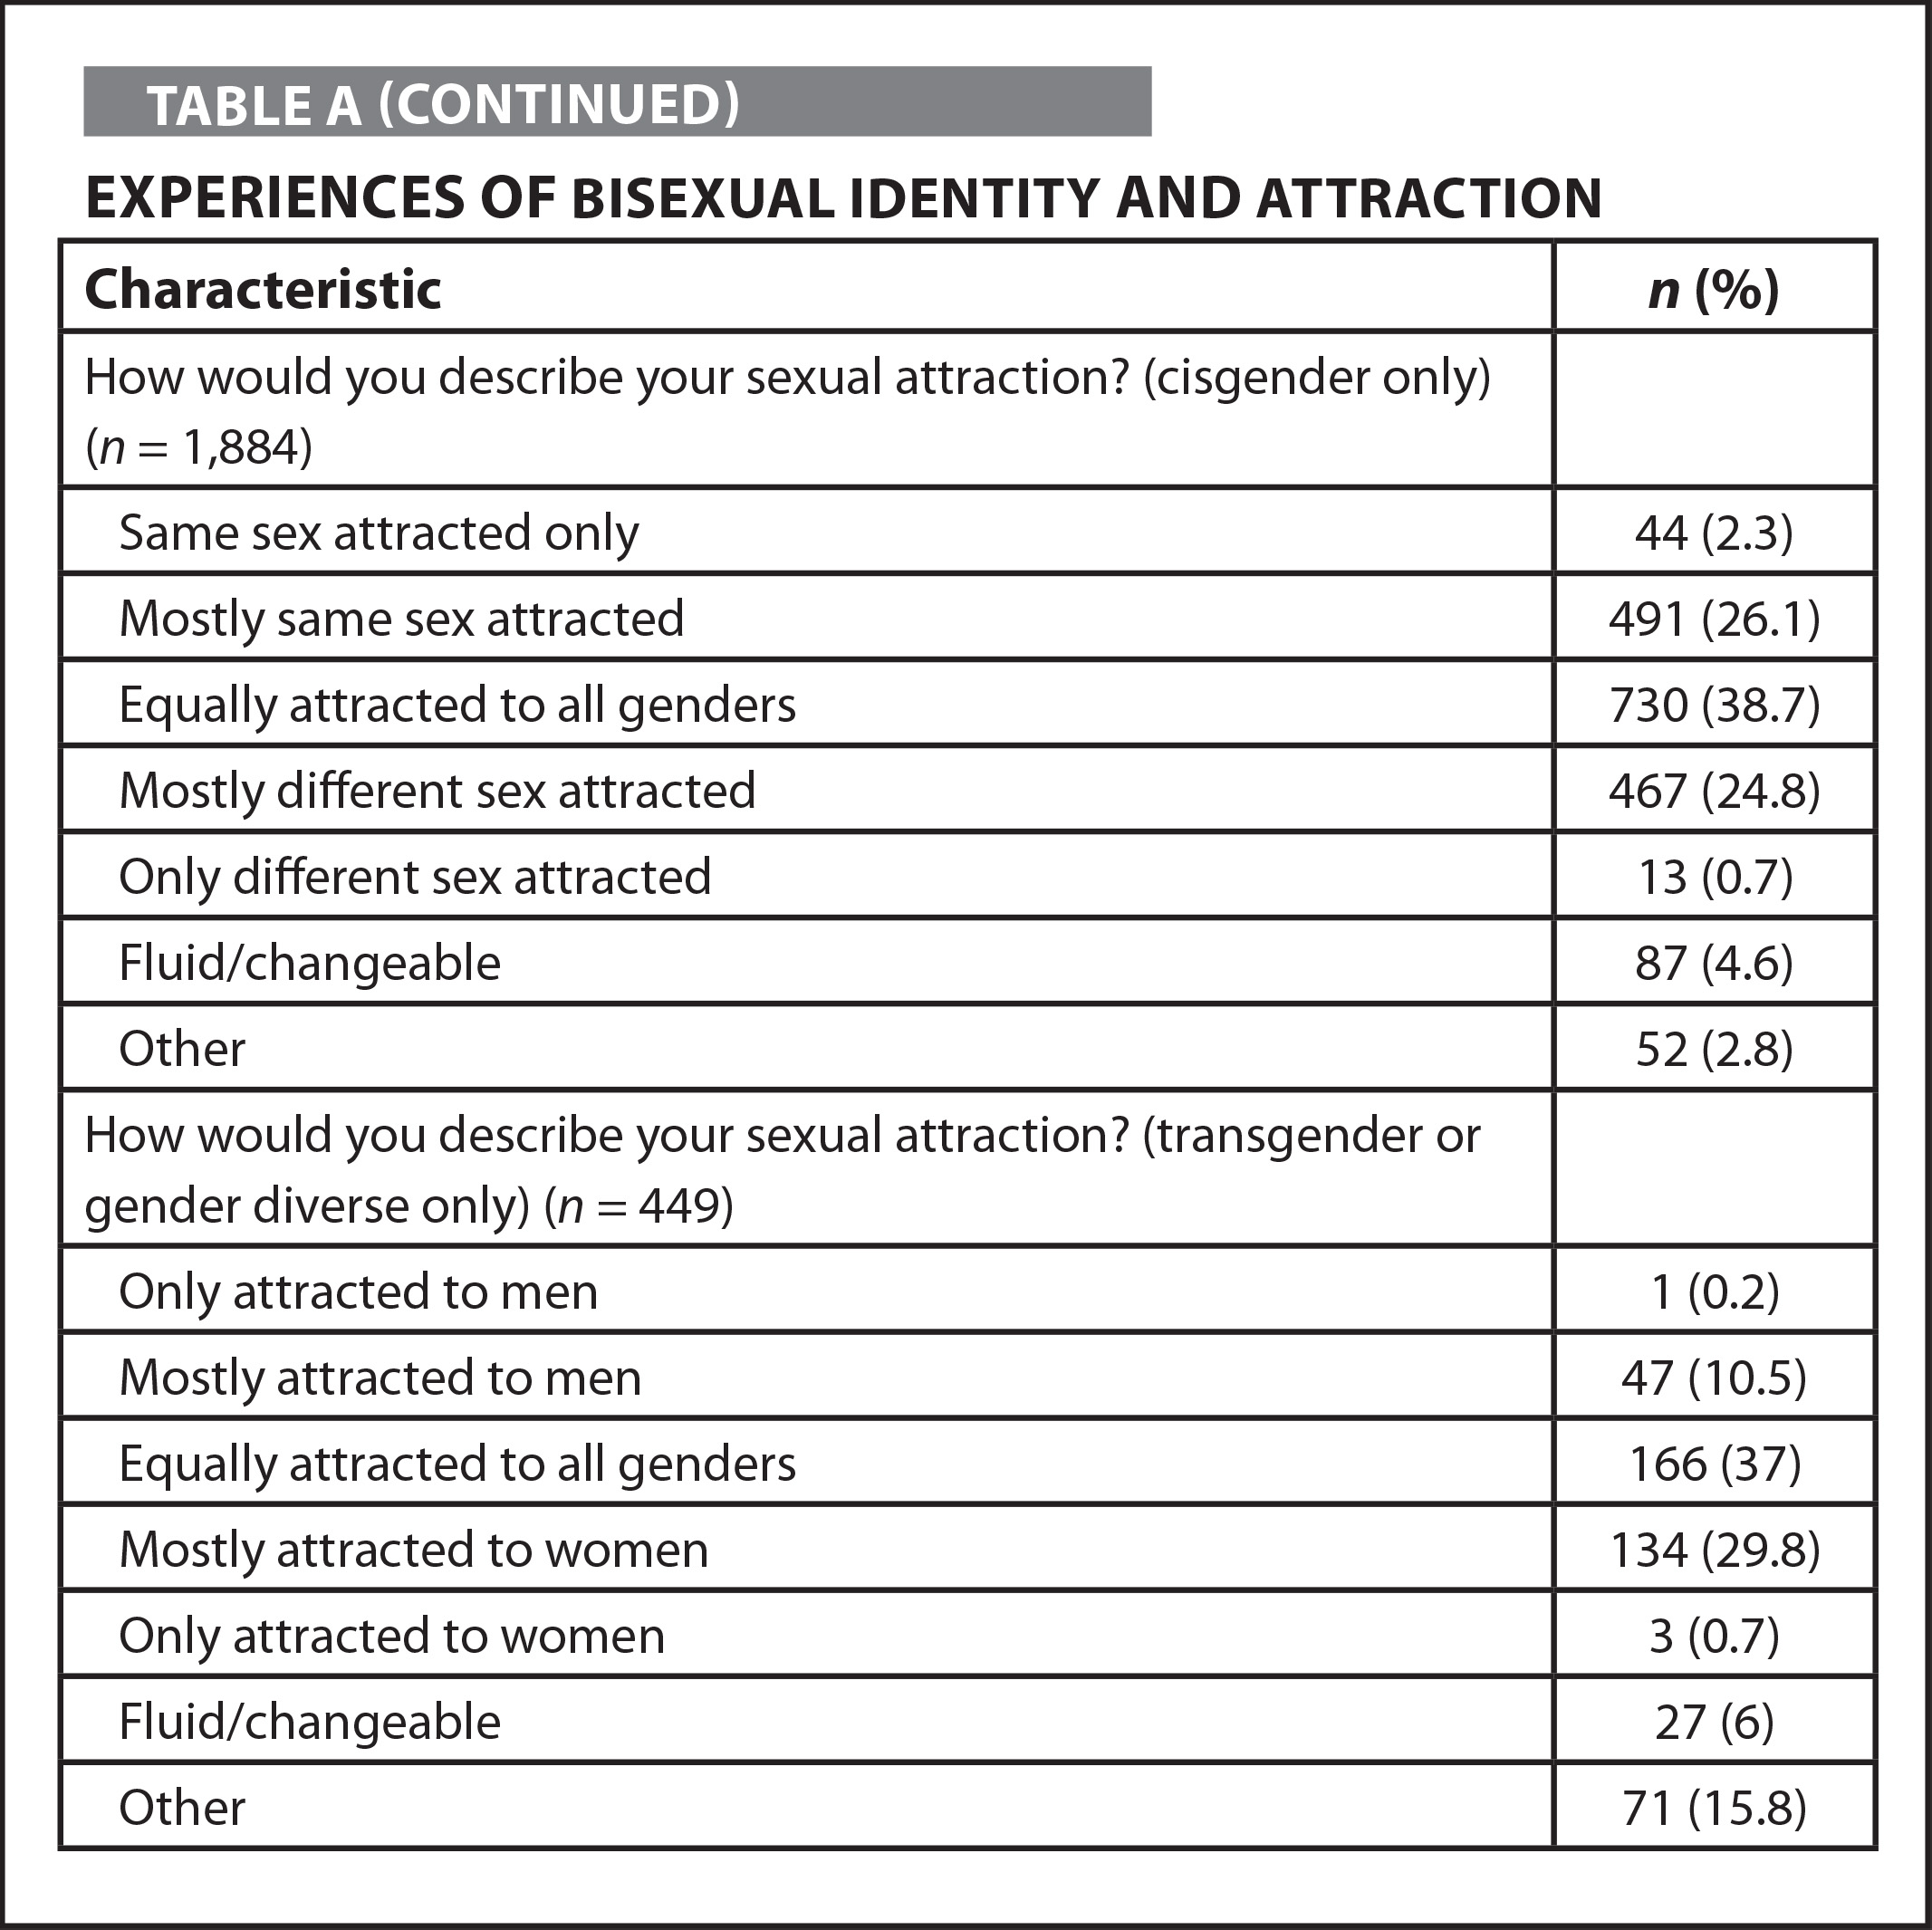 Experiences of Bisexual Identity and Attraction